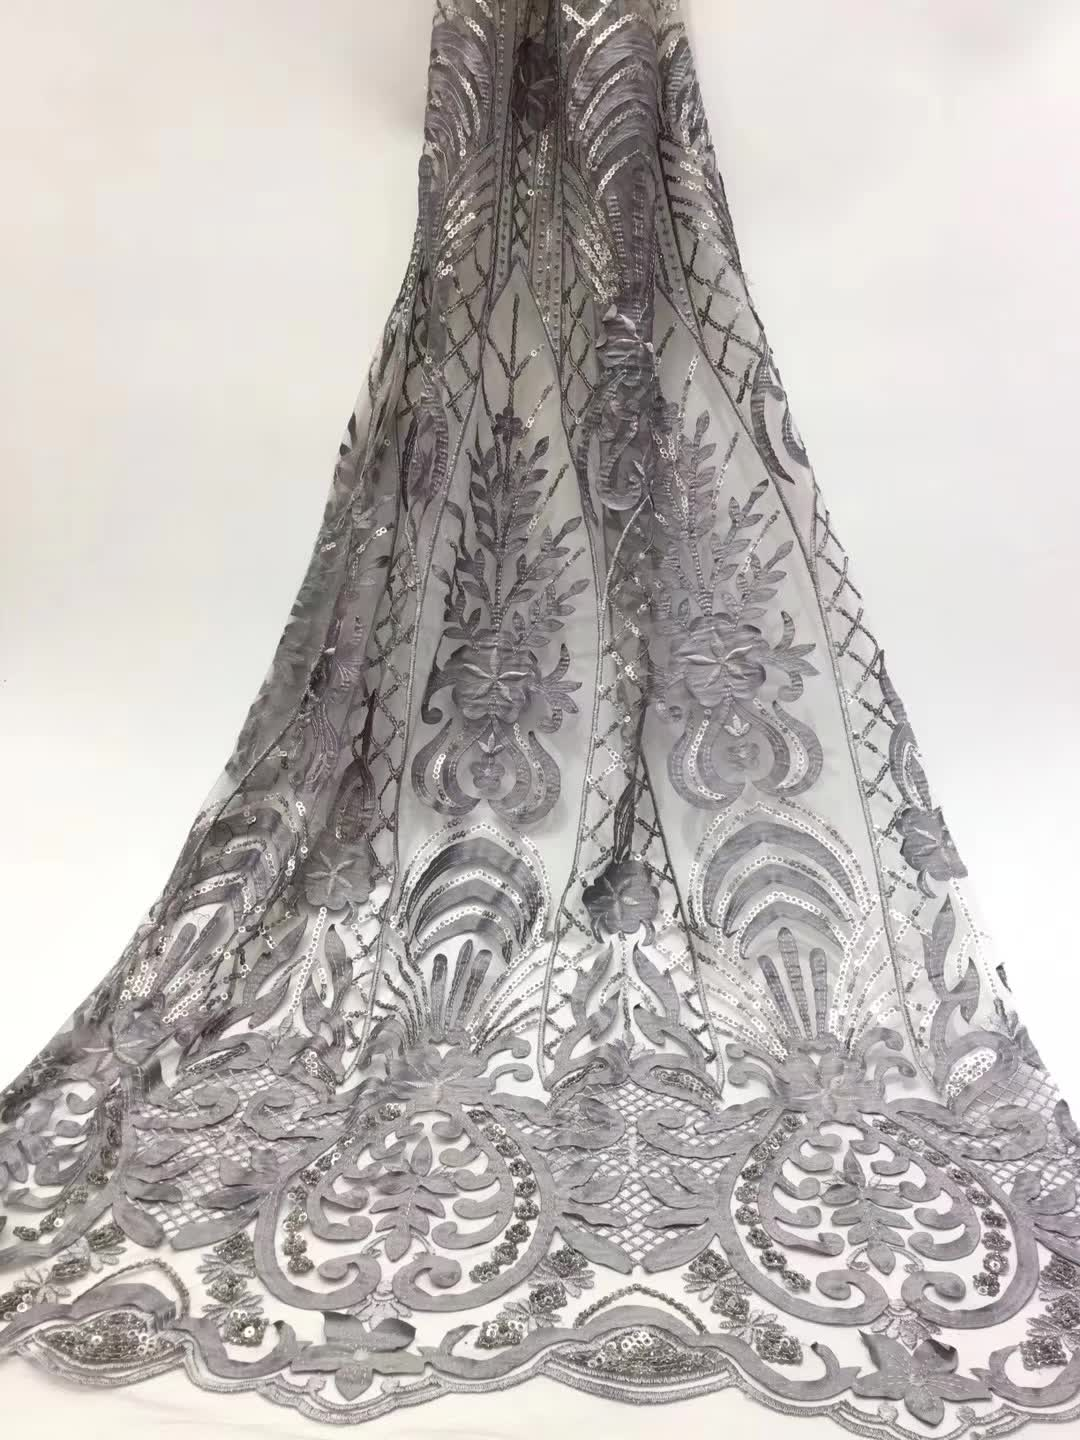 2019 Latest French Nigerian Laces Fabrics High Quality Sequins Tulle African Laces Fabric Wedding French Tulle Lace black2019 Latest French Nigerian Laces Fabrics High Quality Sequins Tulle African Laces Fabric Wedding French Tulle Lace black